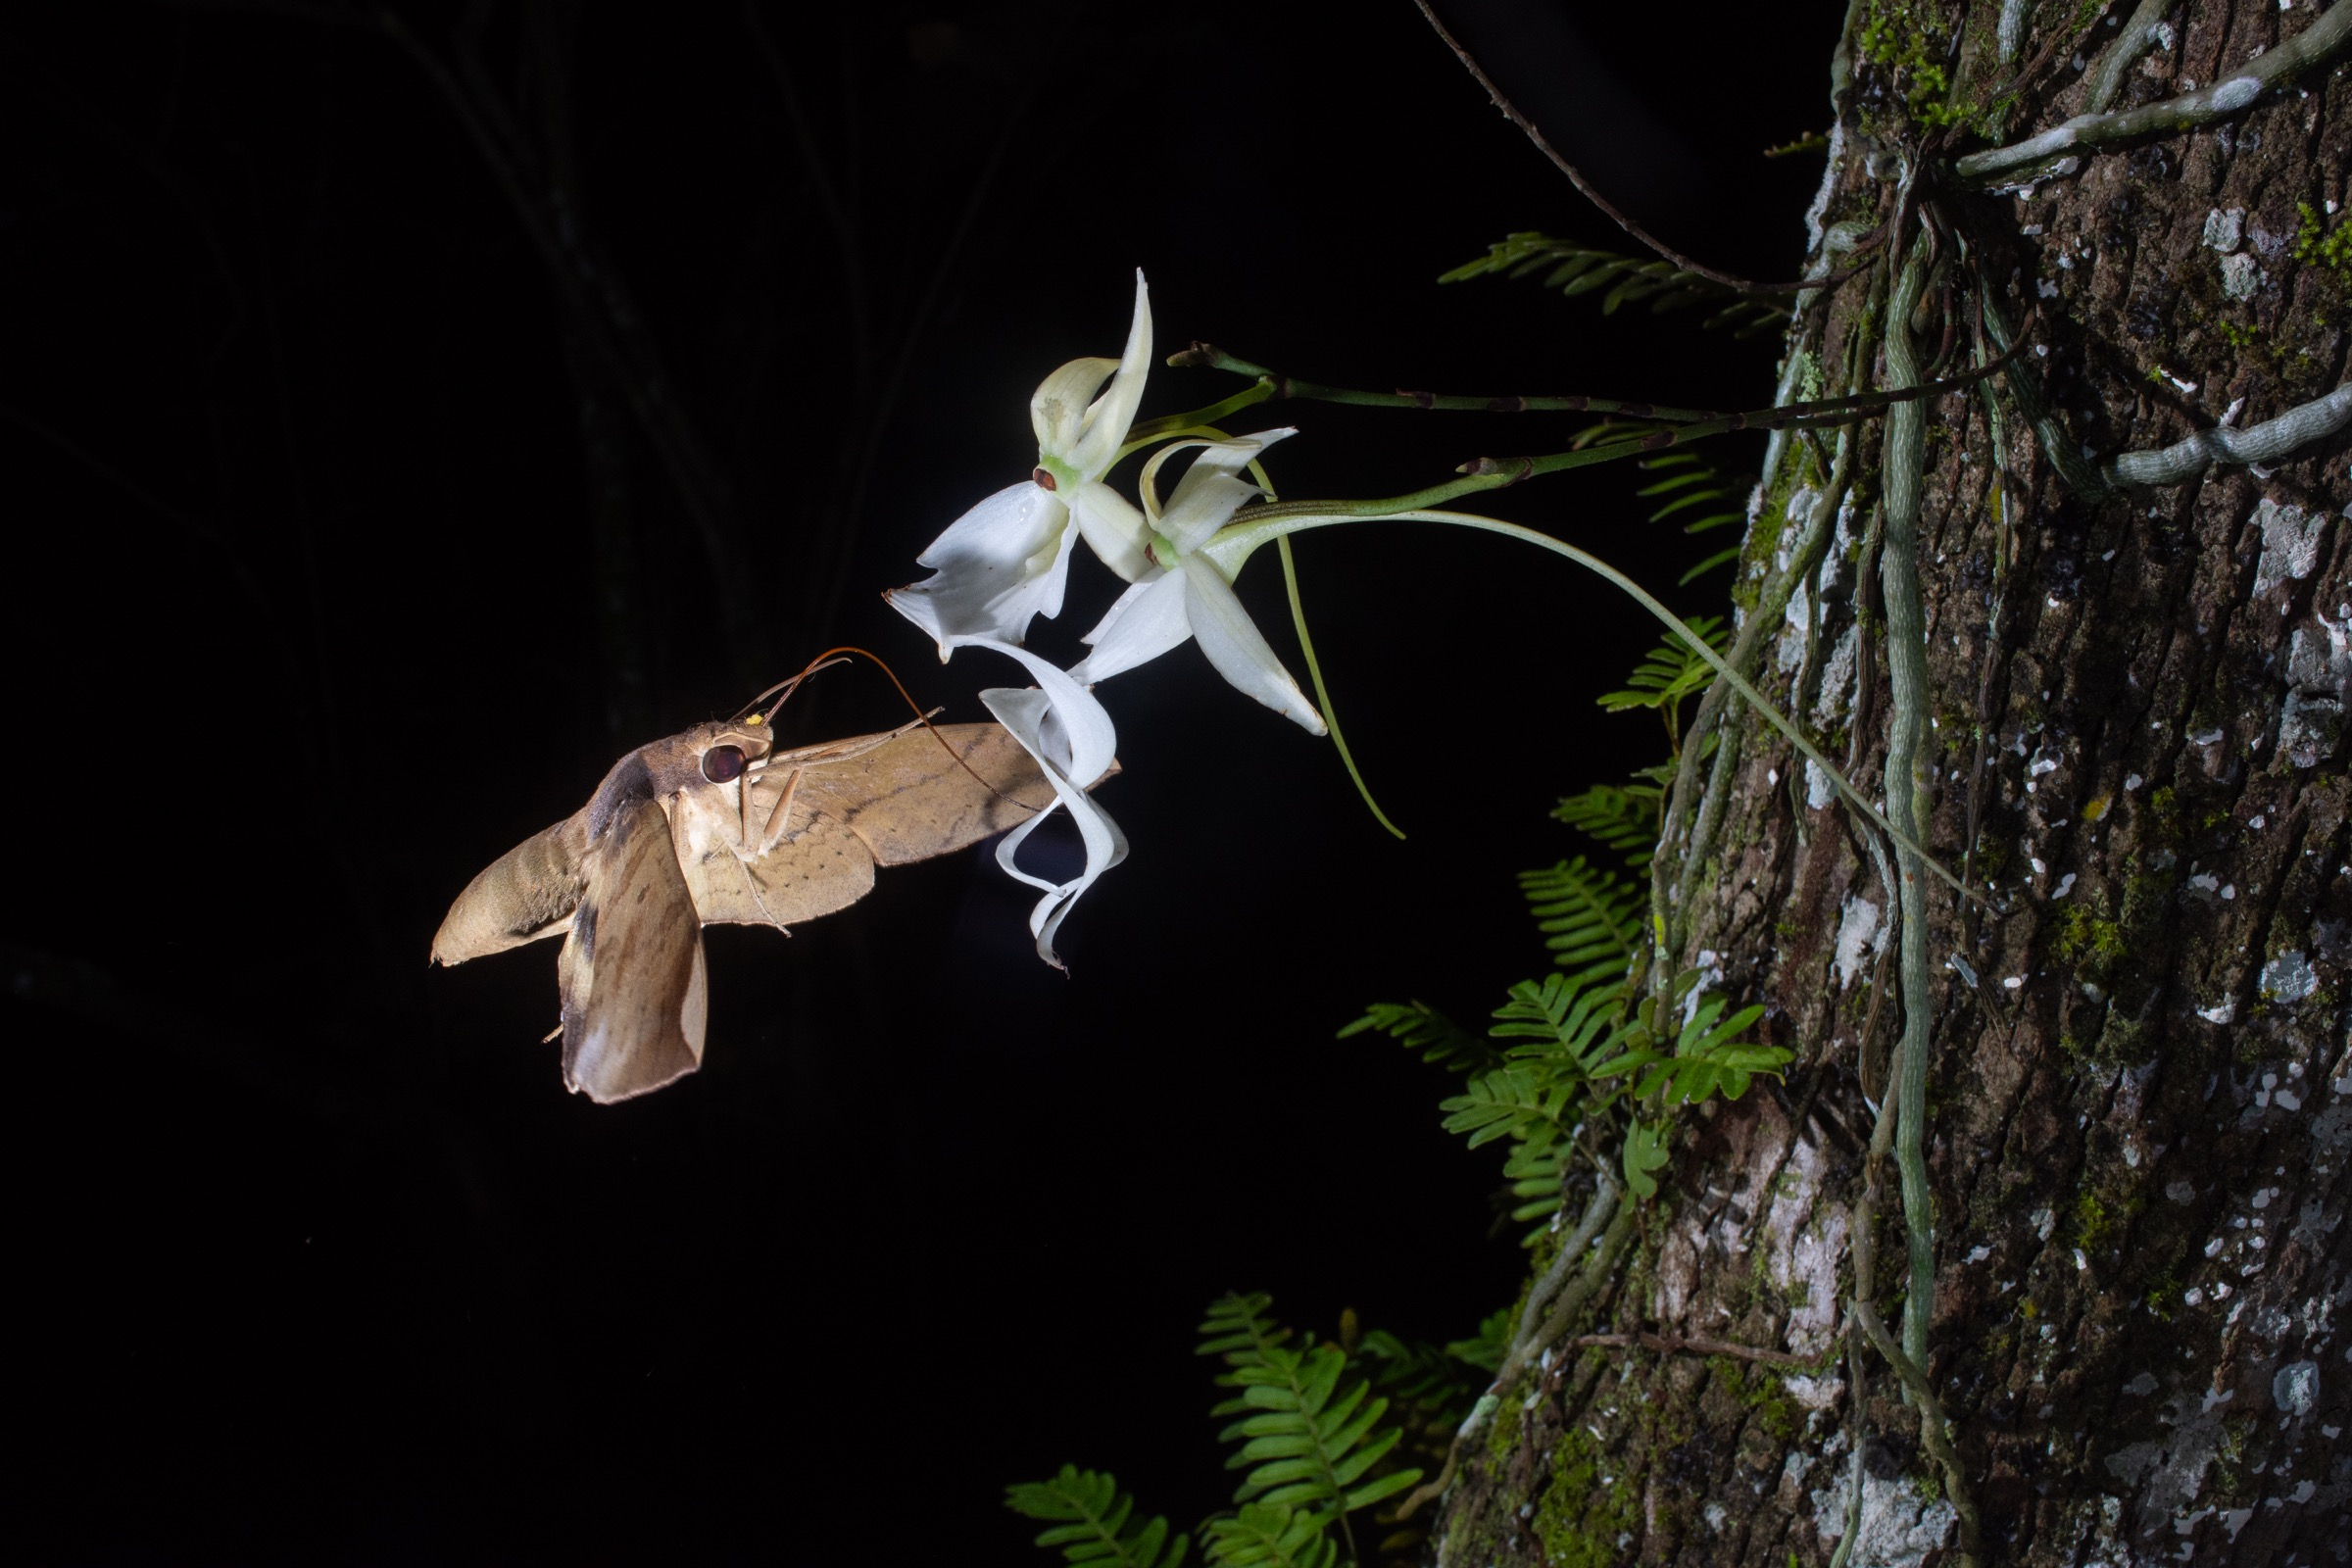 Captured on July 5, 2018, this was the first photograph to document pollination of a ghost orchid bloom. Contrary to the expectations of many experts, who believed that the giant sphinx moth was likely the only pollinator of the ghost orchid, this moth is a fig sphinx. The yellow bundle on its head is a ghost orchid pollinium (pollen cluster). Photograph by Carlton Ward Jr.